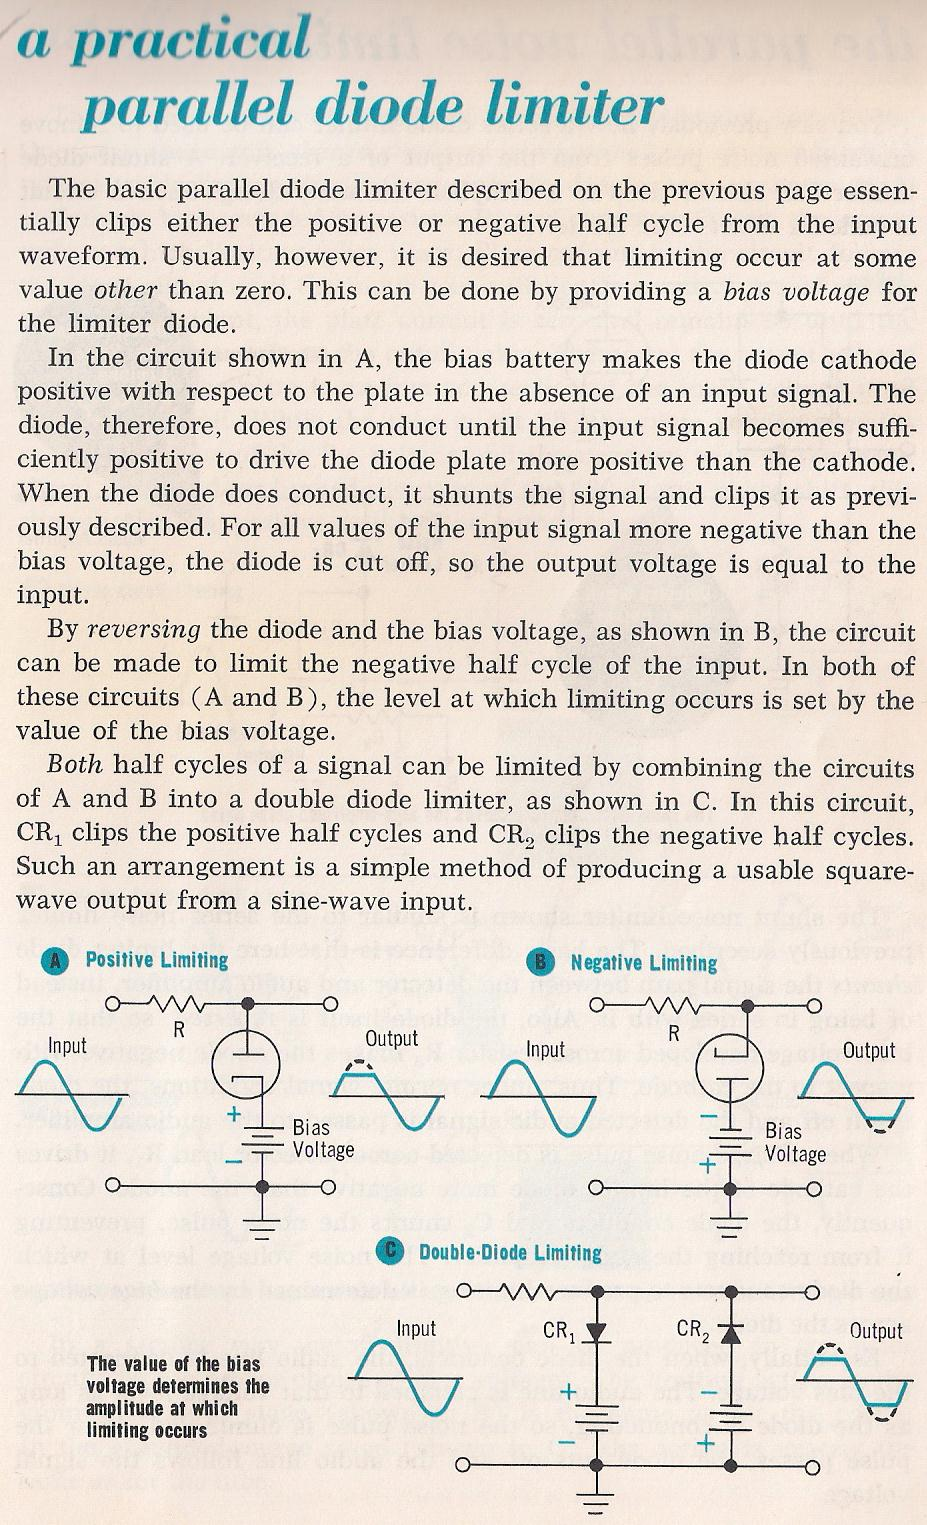 AUXILIARY CIRCUITS - 001 Auxiliary Circuits (By Larry E  Gugle